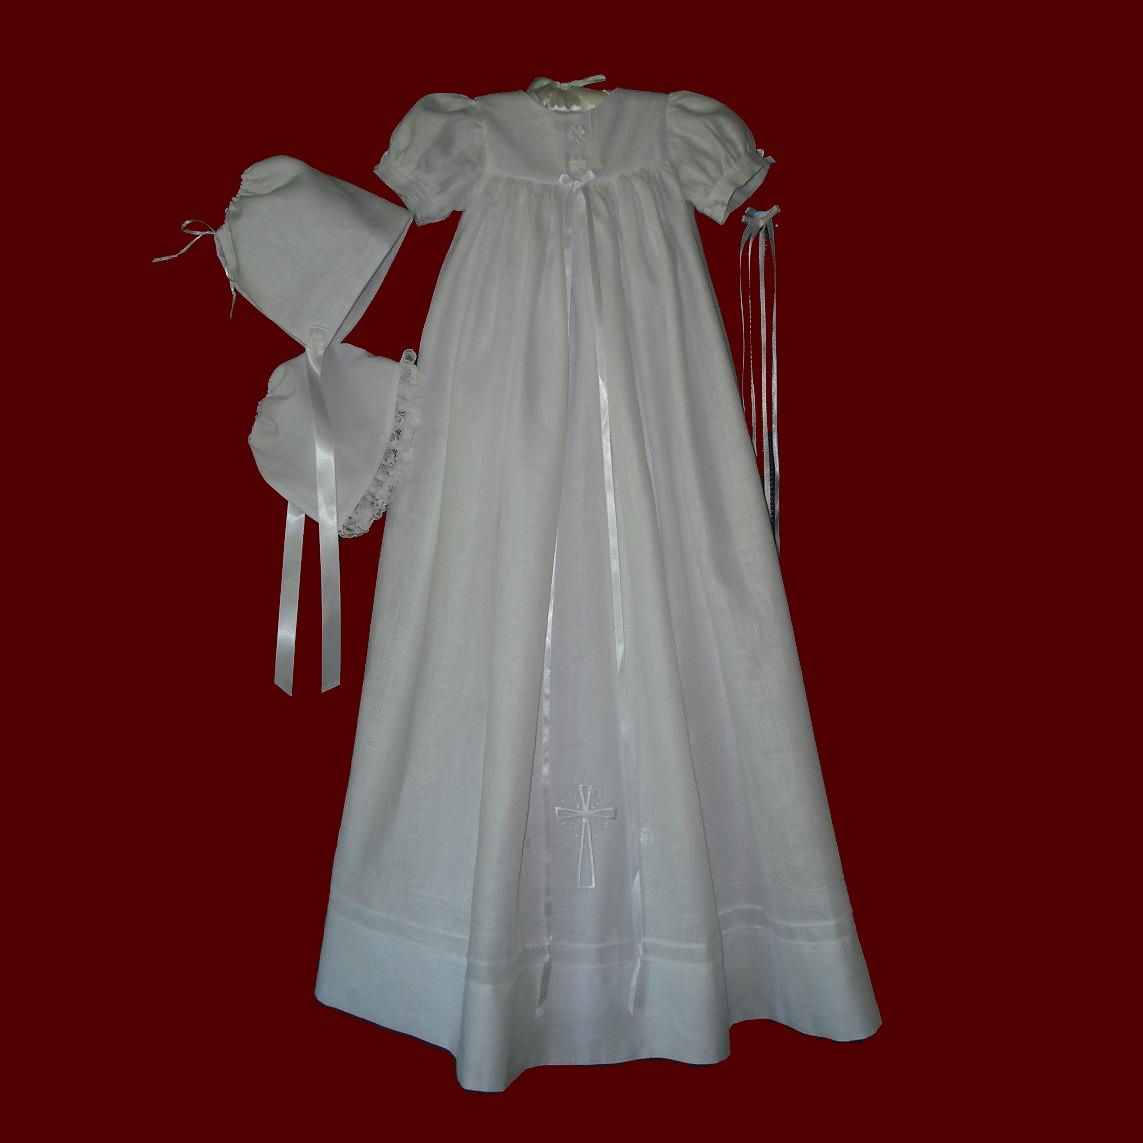 Unisex Embroidered Cross Irish Christening Gown